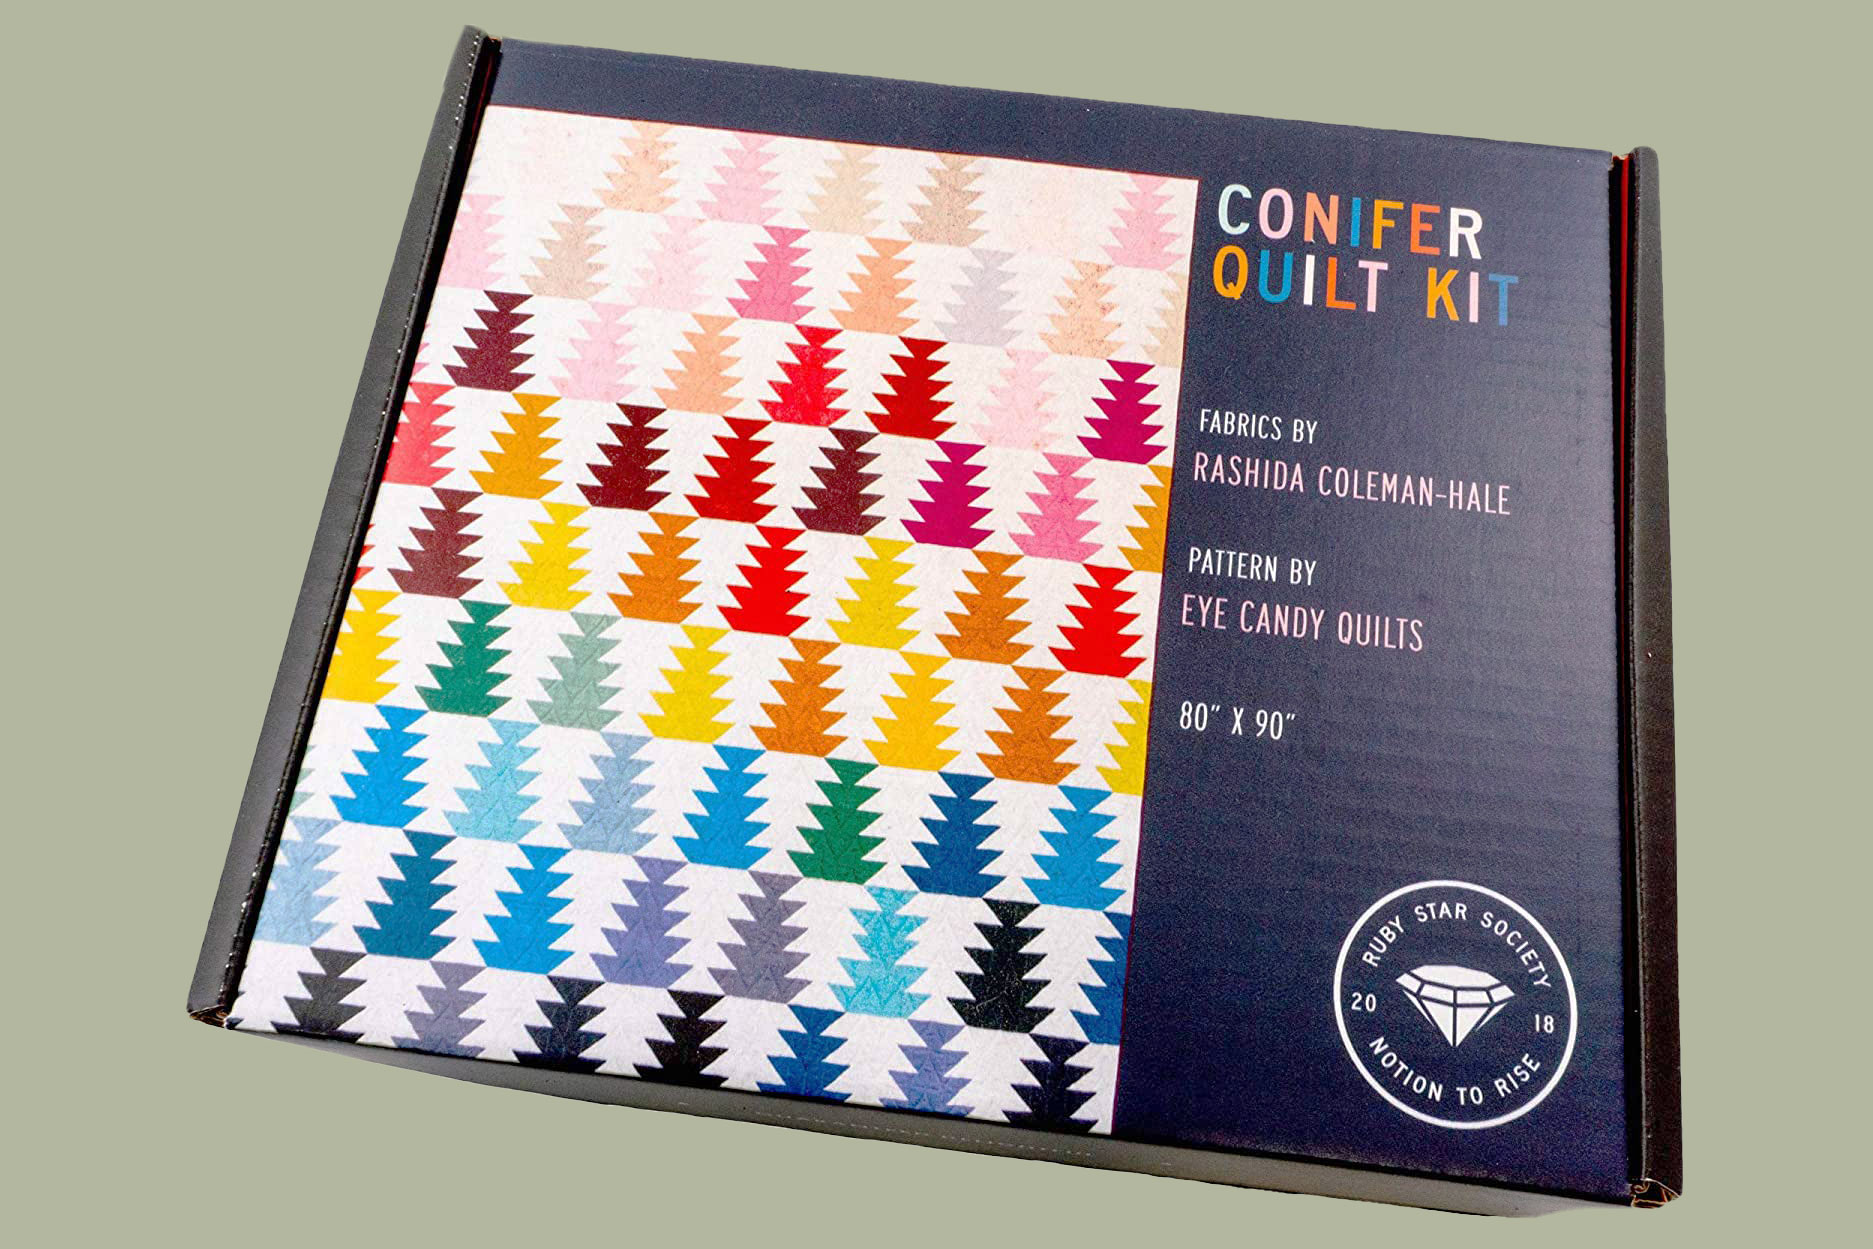 conifer quilt kit box